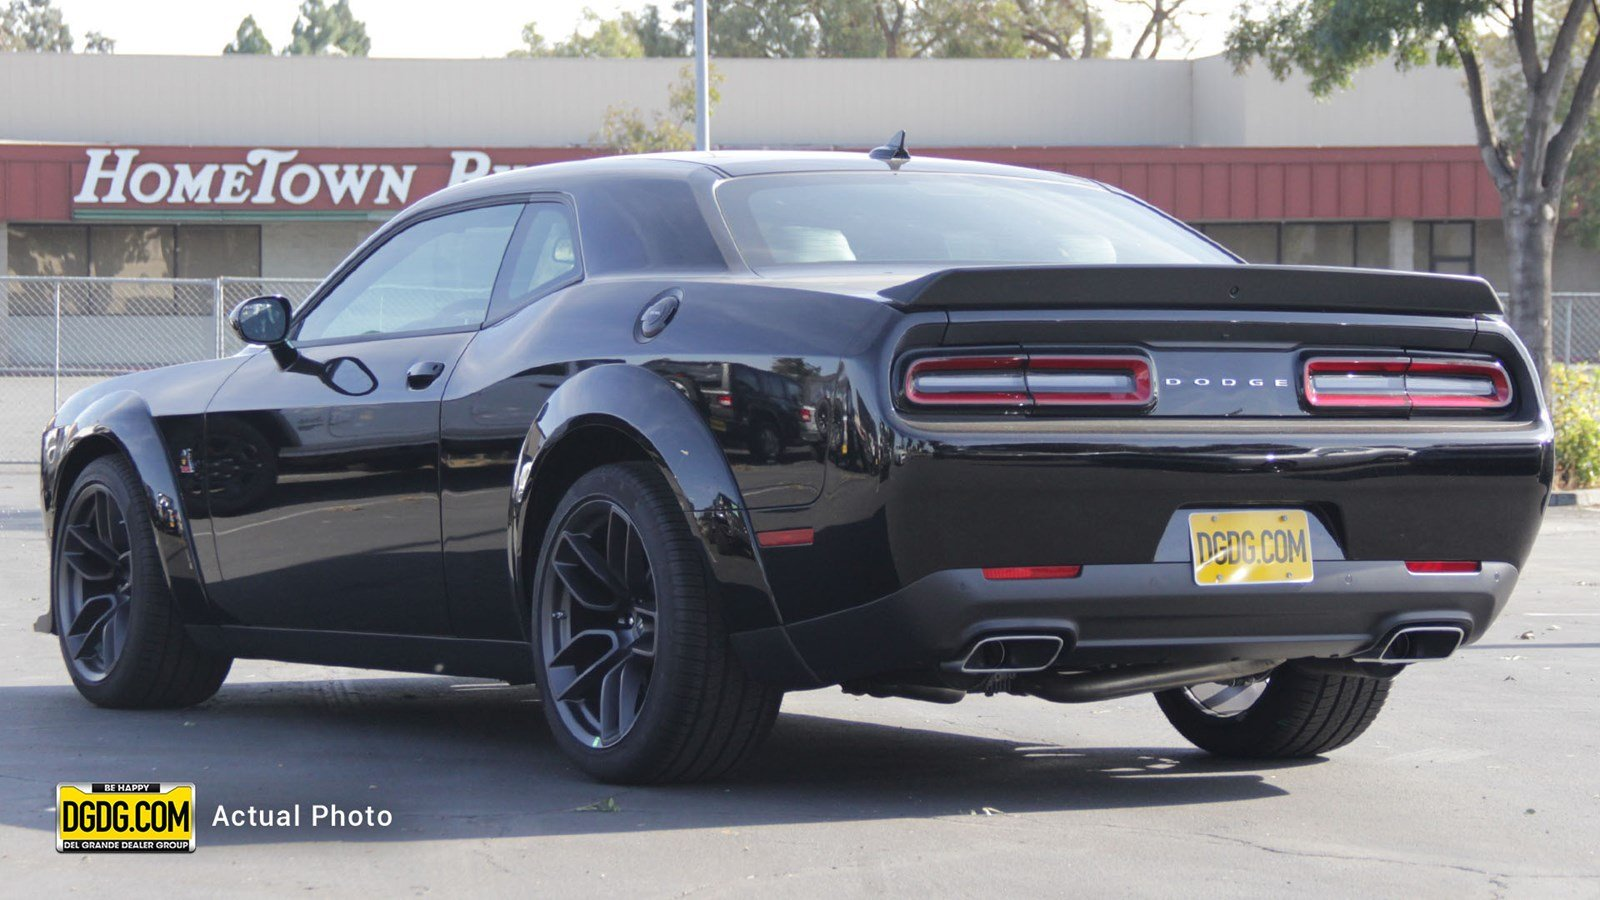 New 2019 DODGE Challenger R/T Scat Pack Widebody